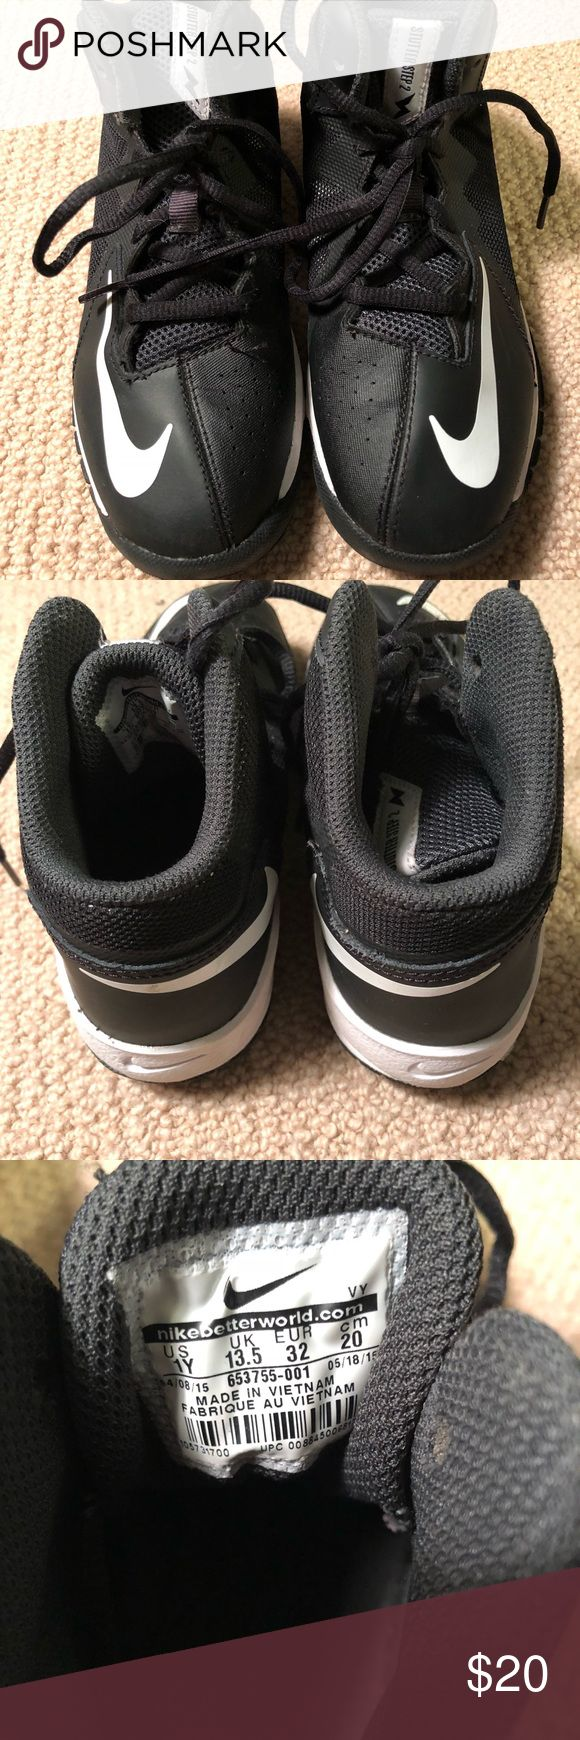 Nike Stutter Step black high tops Like new- Nike Stutter Step high top sneakers. Black and white. Only really worn to, in, and from hip hop class. Size 1Y Nike Shoes Sneakers